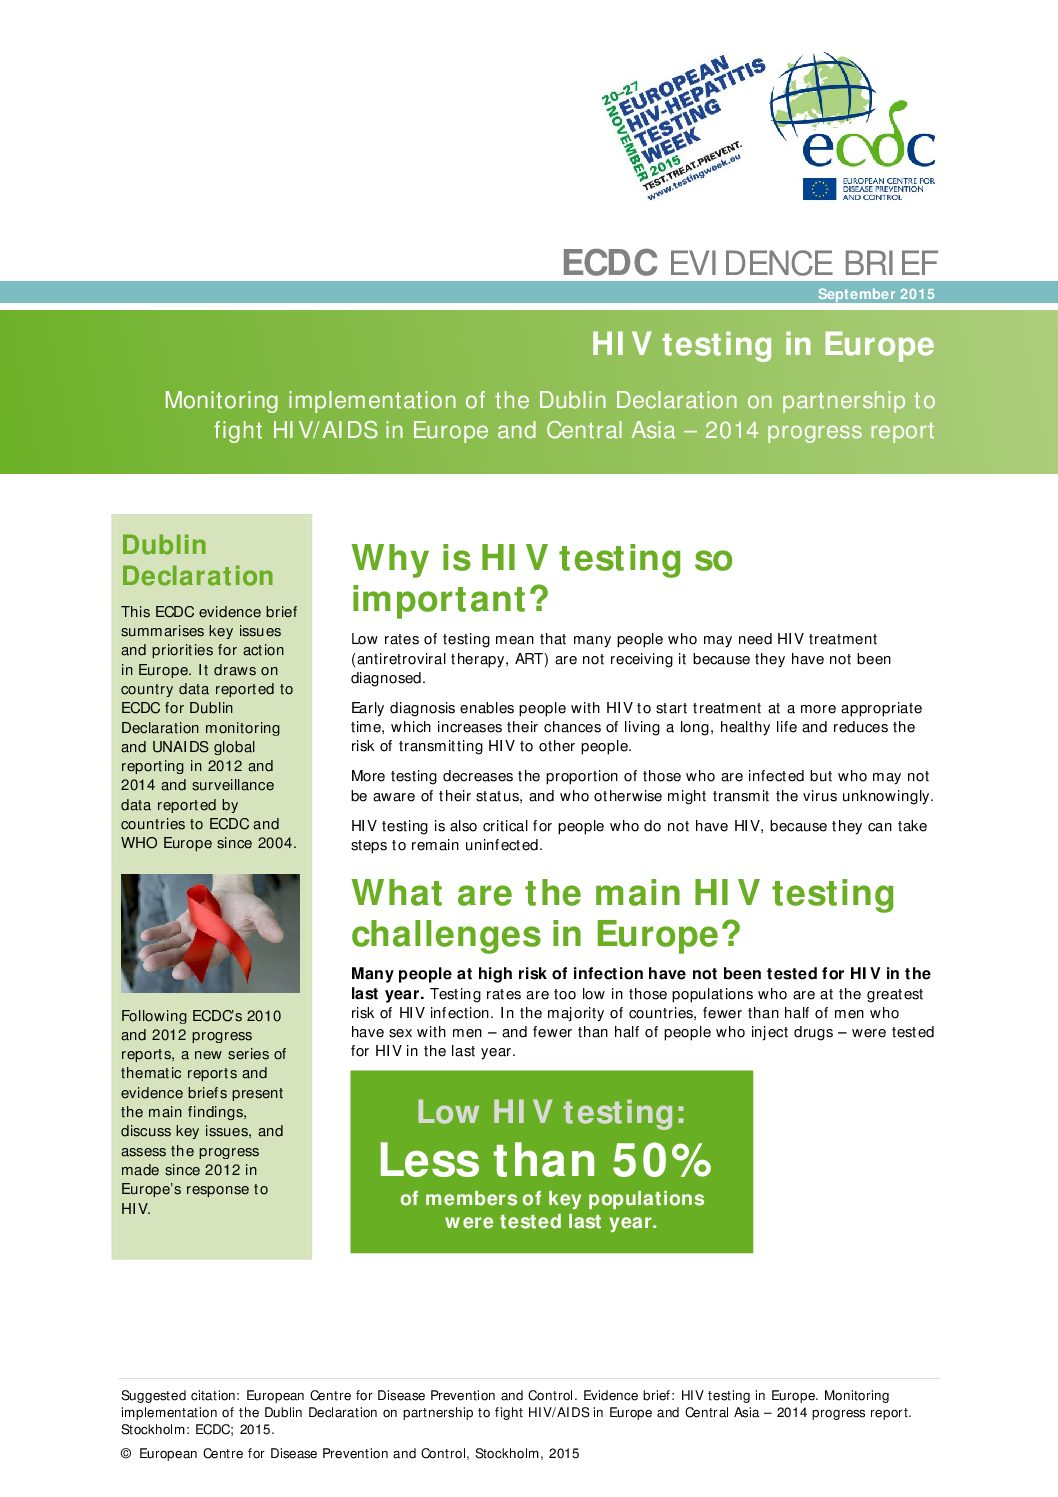 HIV testing in Europe. Monitoring implementation of the Dublin Declaration on partnership to fight HIV/AIDS in Europe and Central Asia – 2014 progress report